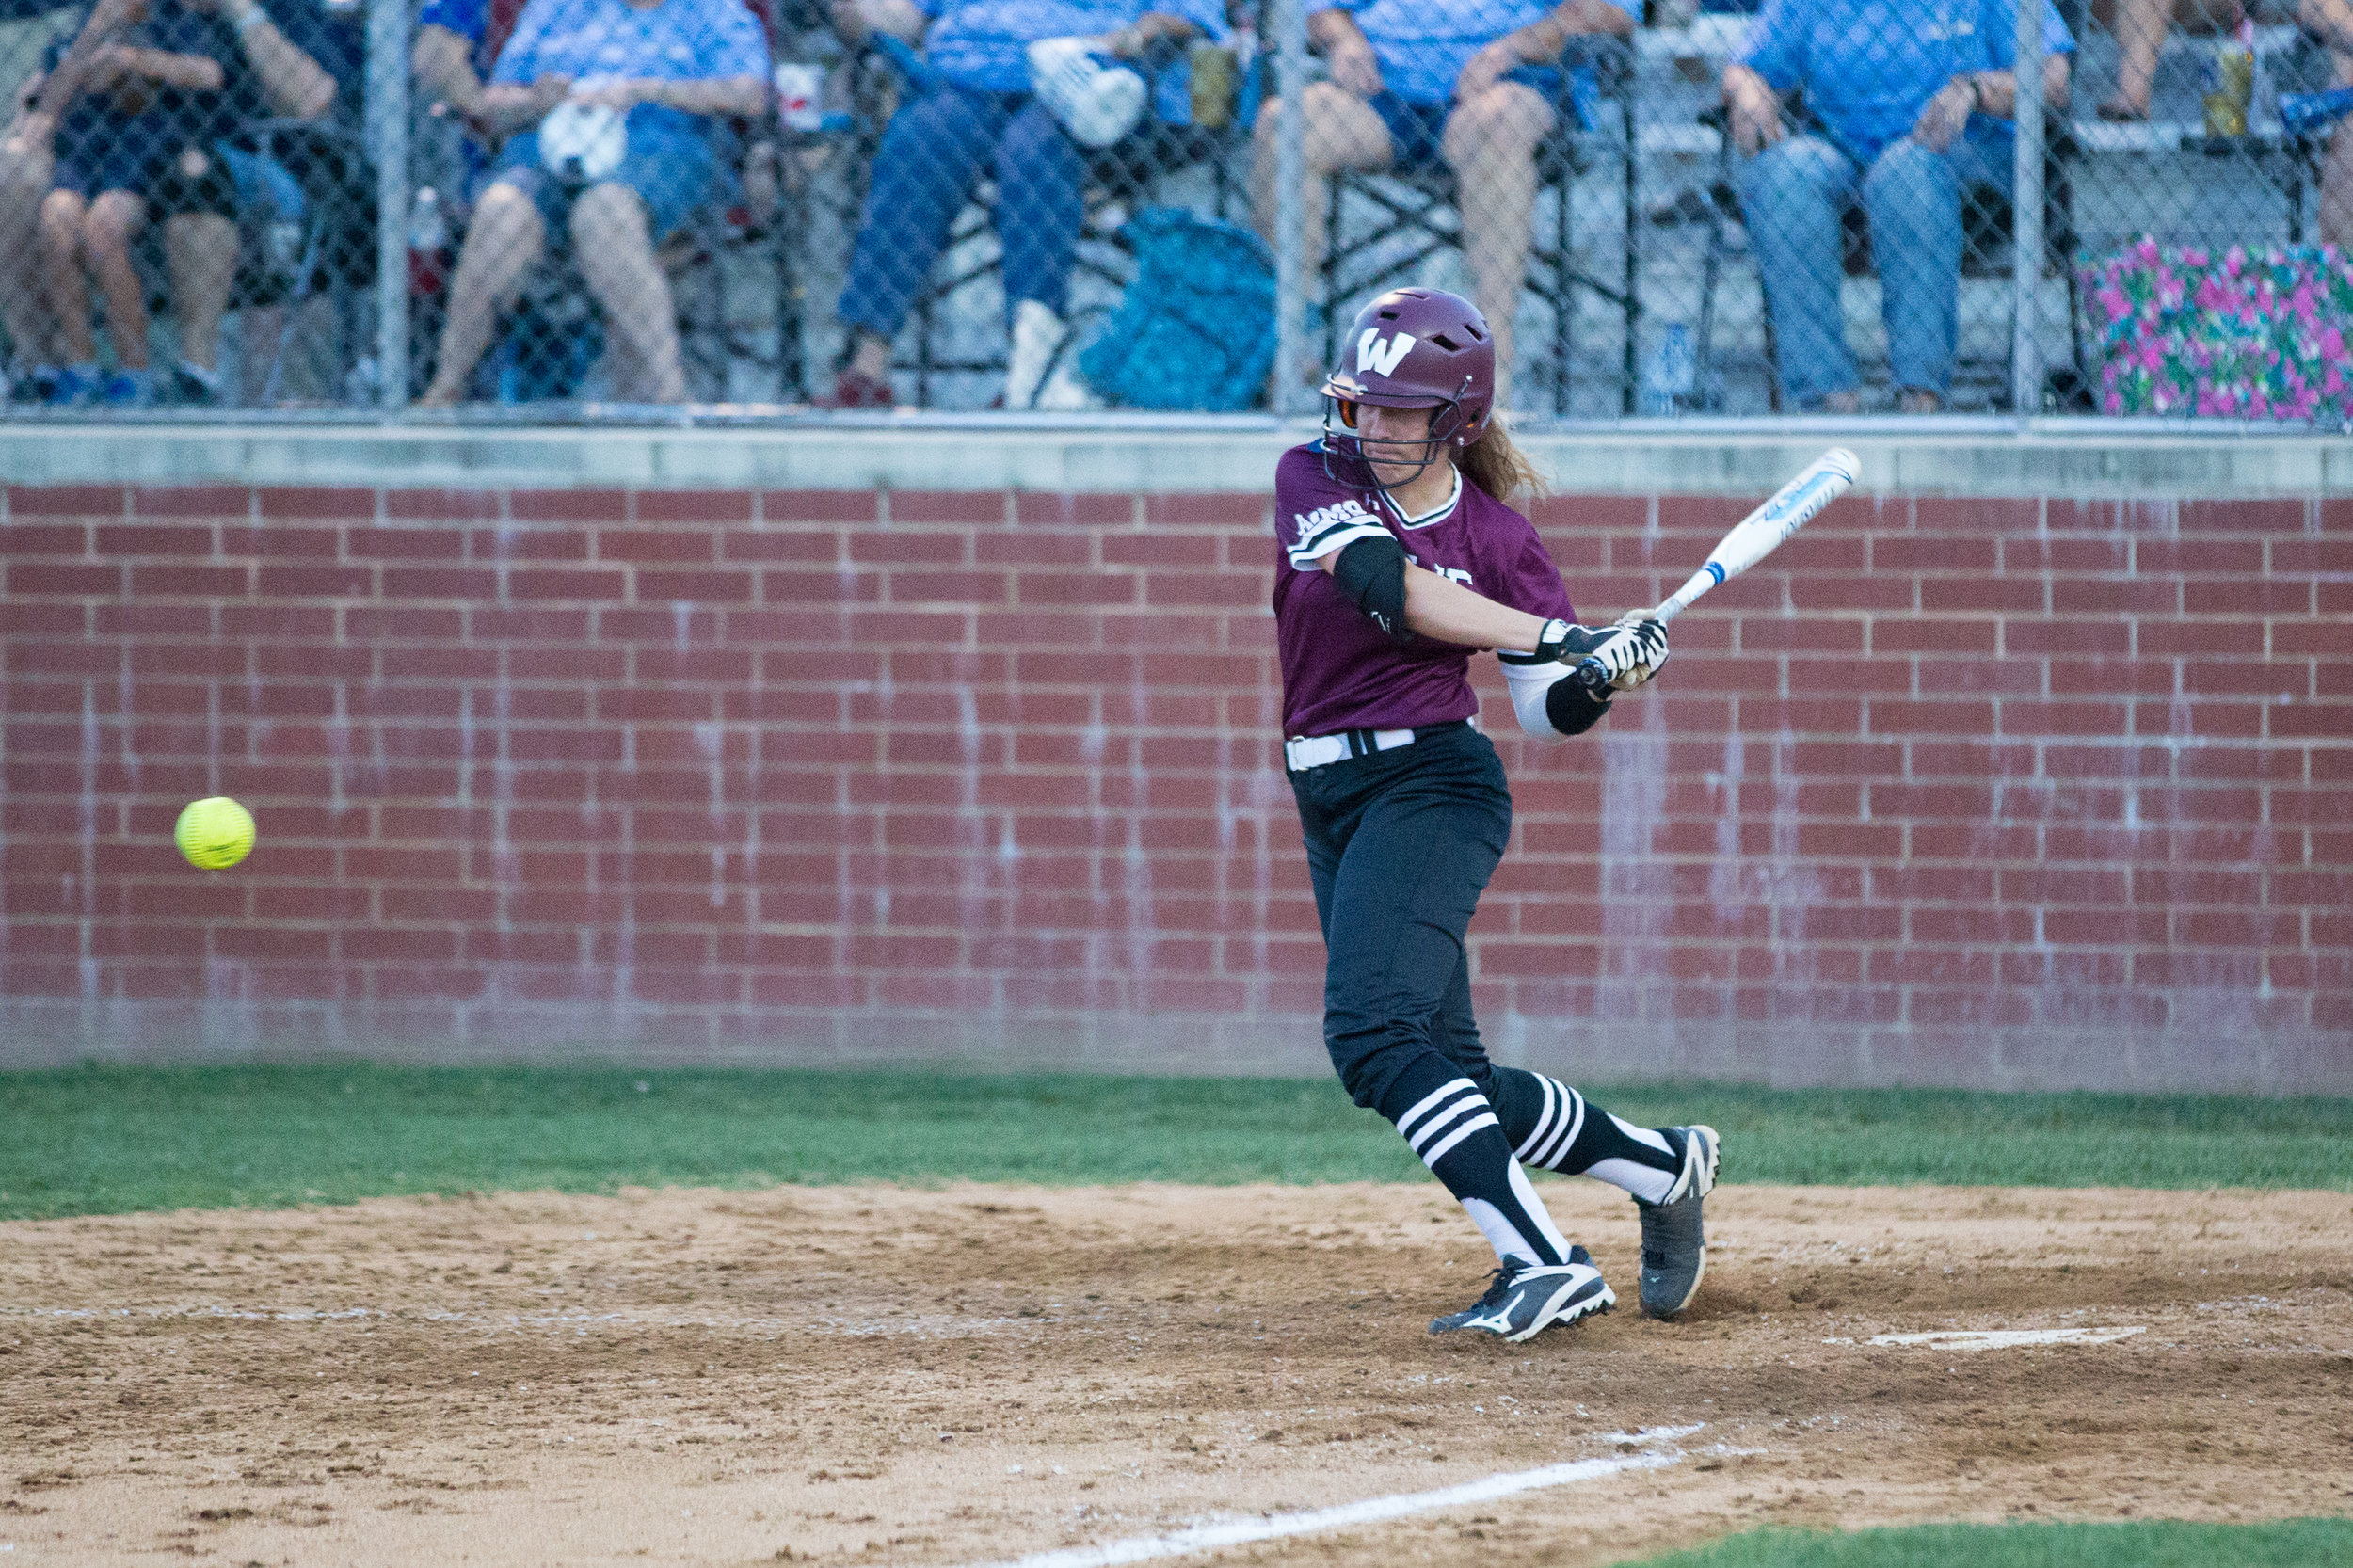 5_18 Wylie Softball-159.jpg